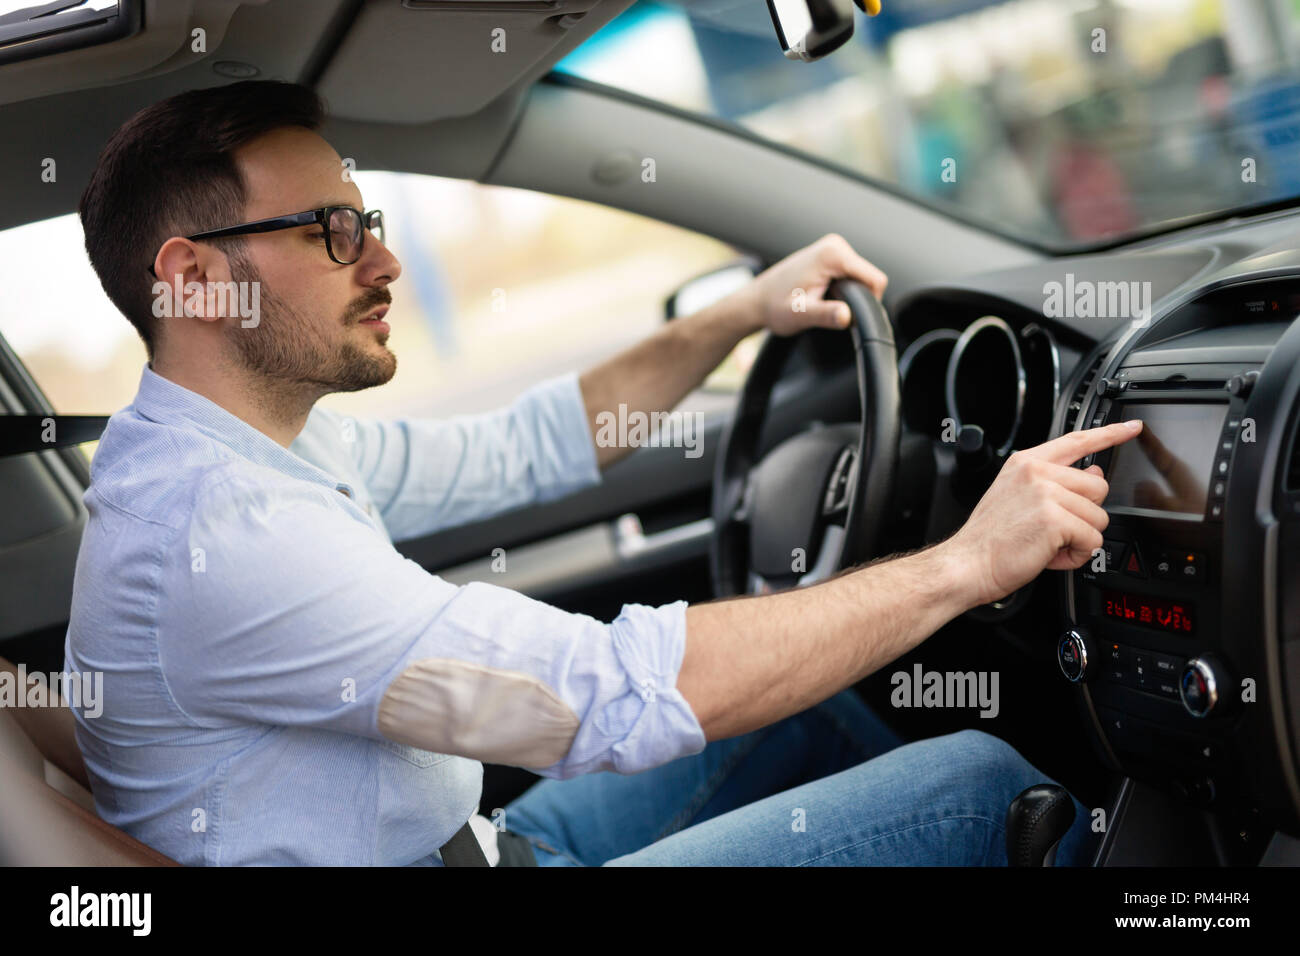 Man Using Gps Navigation System In Car Stock Photo